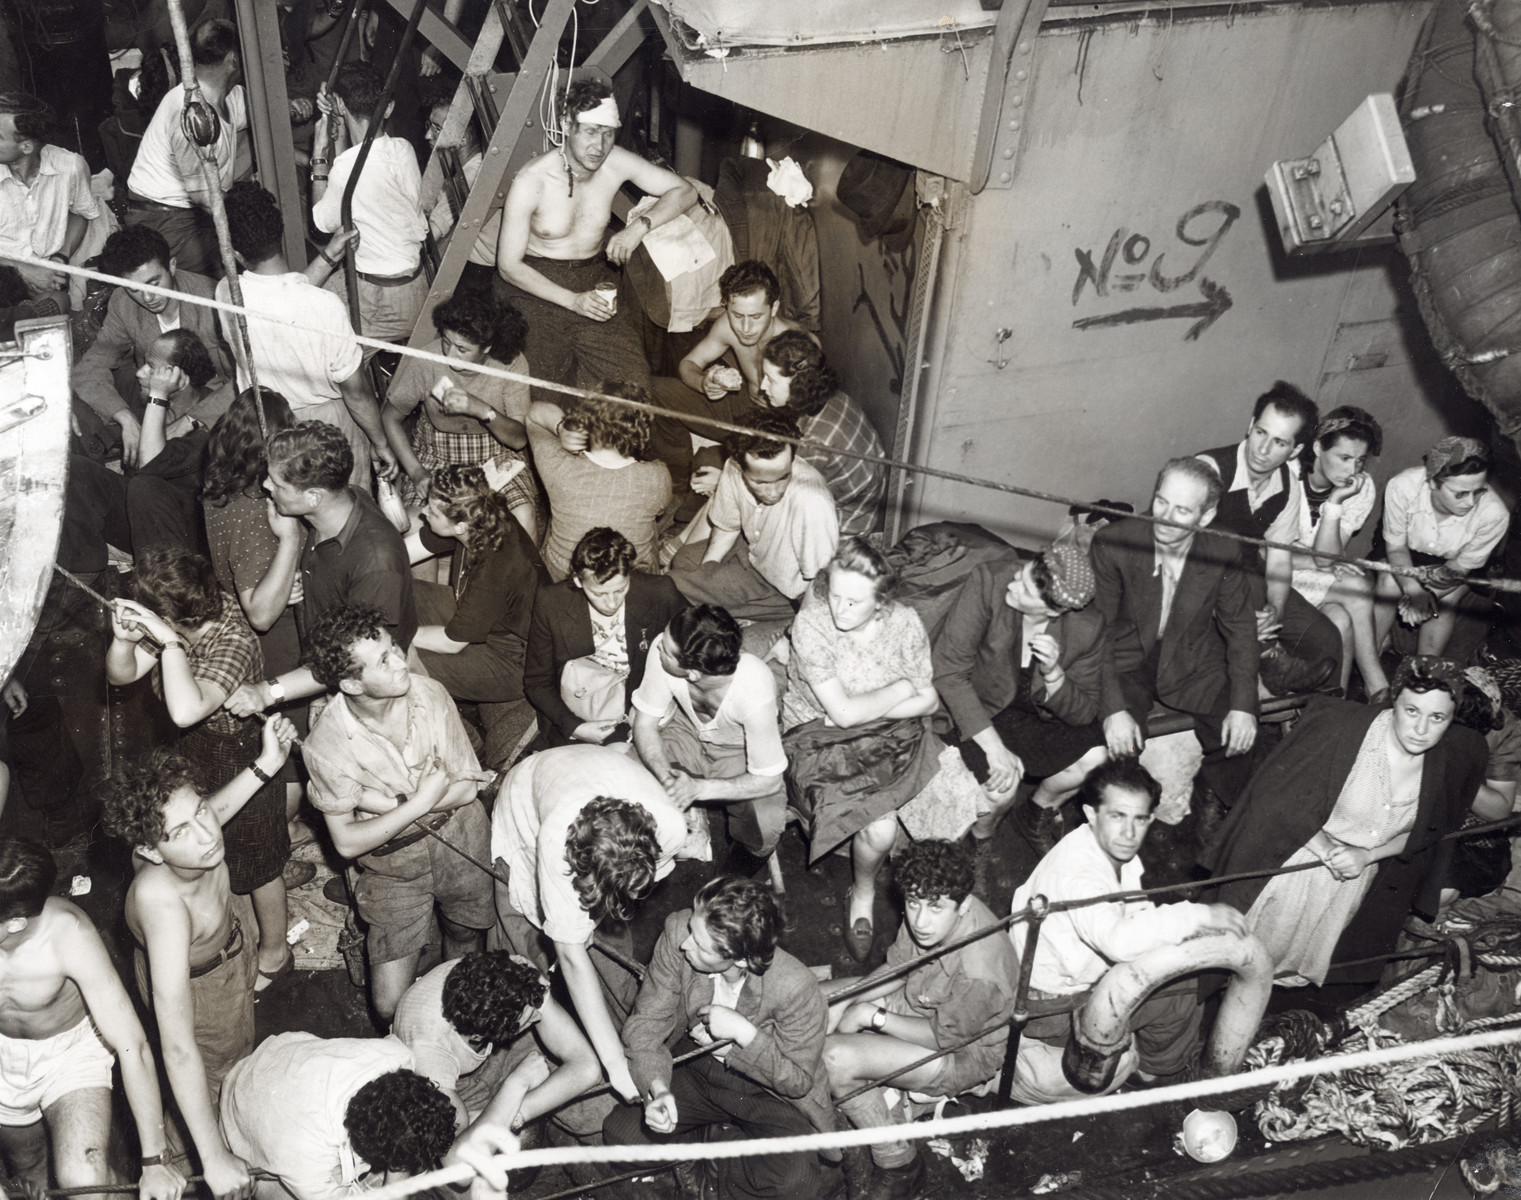 """Refugee Jews wait aboard the Josiah Wedgewood after the British navy fired at ship  The original caption reads: """"The former Canadian corvette Josiah Wedgewood, with 1,300 European Jewish refugees aboard, was captured near here June 27th by British warships after a dramatic attempt to escape authorities and land illegally in Palestine. The refugees, many of whom has spent years in German concentration camps, did not halt their ship until three warning shots were fired from the HMS Haydon, a Bristish Destroyer. Sailing under Panamanian registry, the corvette was spotted seventy-three miles out at sea by aircraft, but the British could not act until attempt was made to enter territorial waters. The Jews were detained at Athlit Clearance camp on the official charge of being a """"menace to navigation."""""""""""